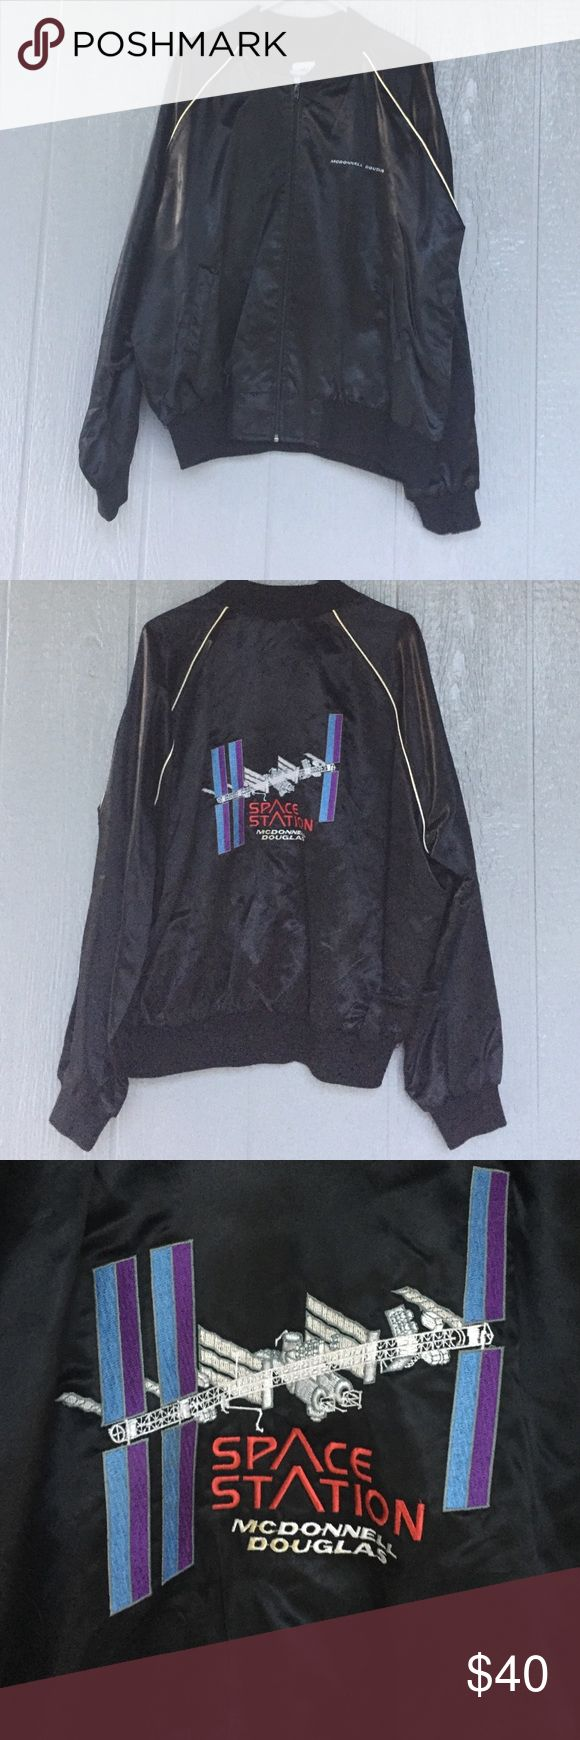 Vintage High five sportswear bomber jacket McDonnell Douglas with space station the the back high five sportswear Jackets & Coats Bomber & Varsity